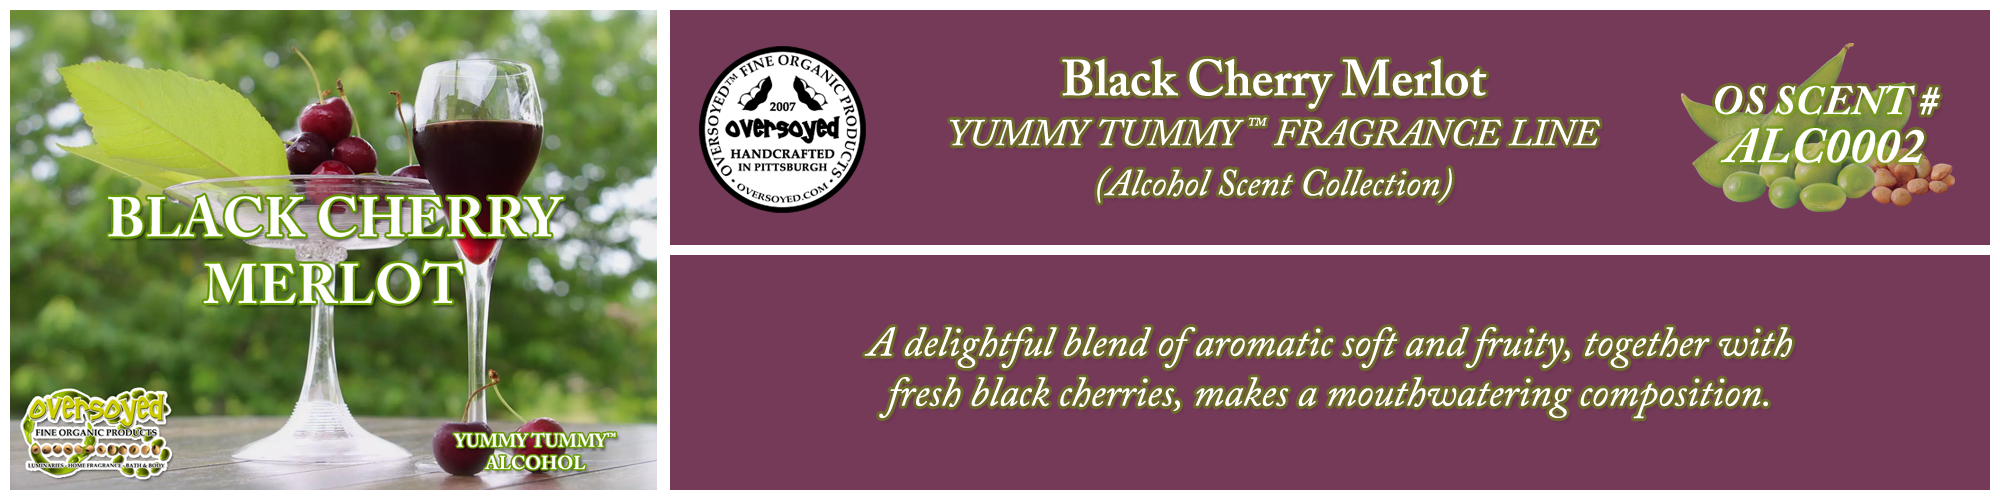 Black Cherry Merlot Handcrafted Products Collection